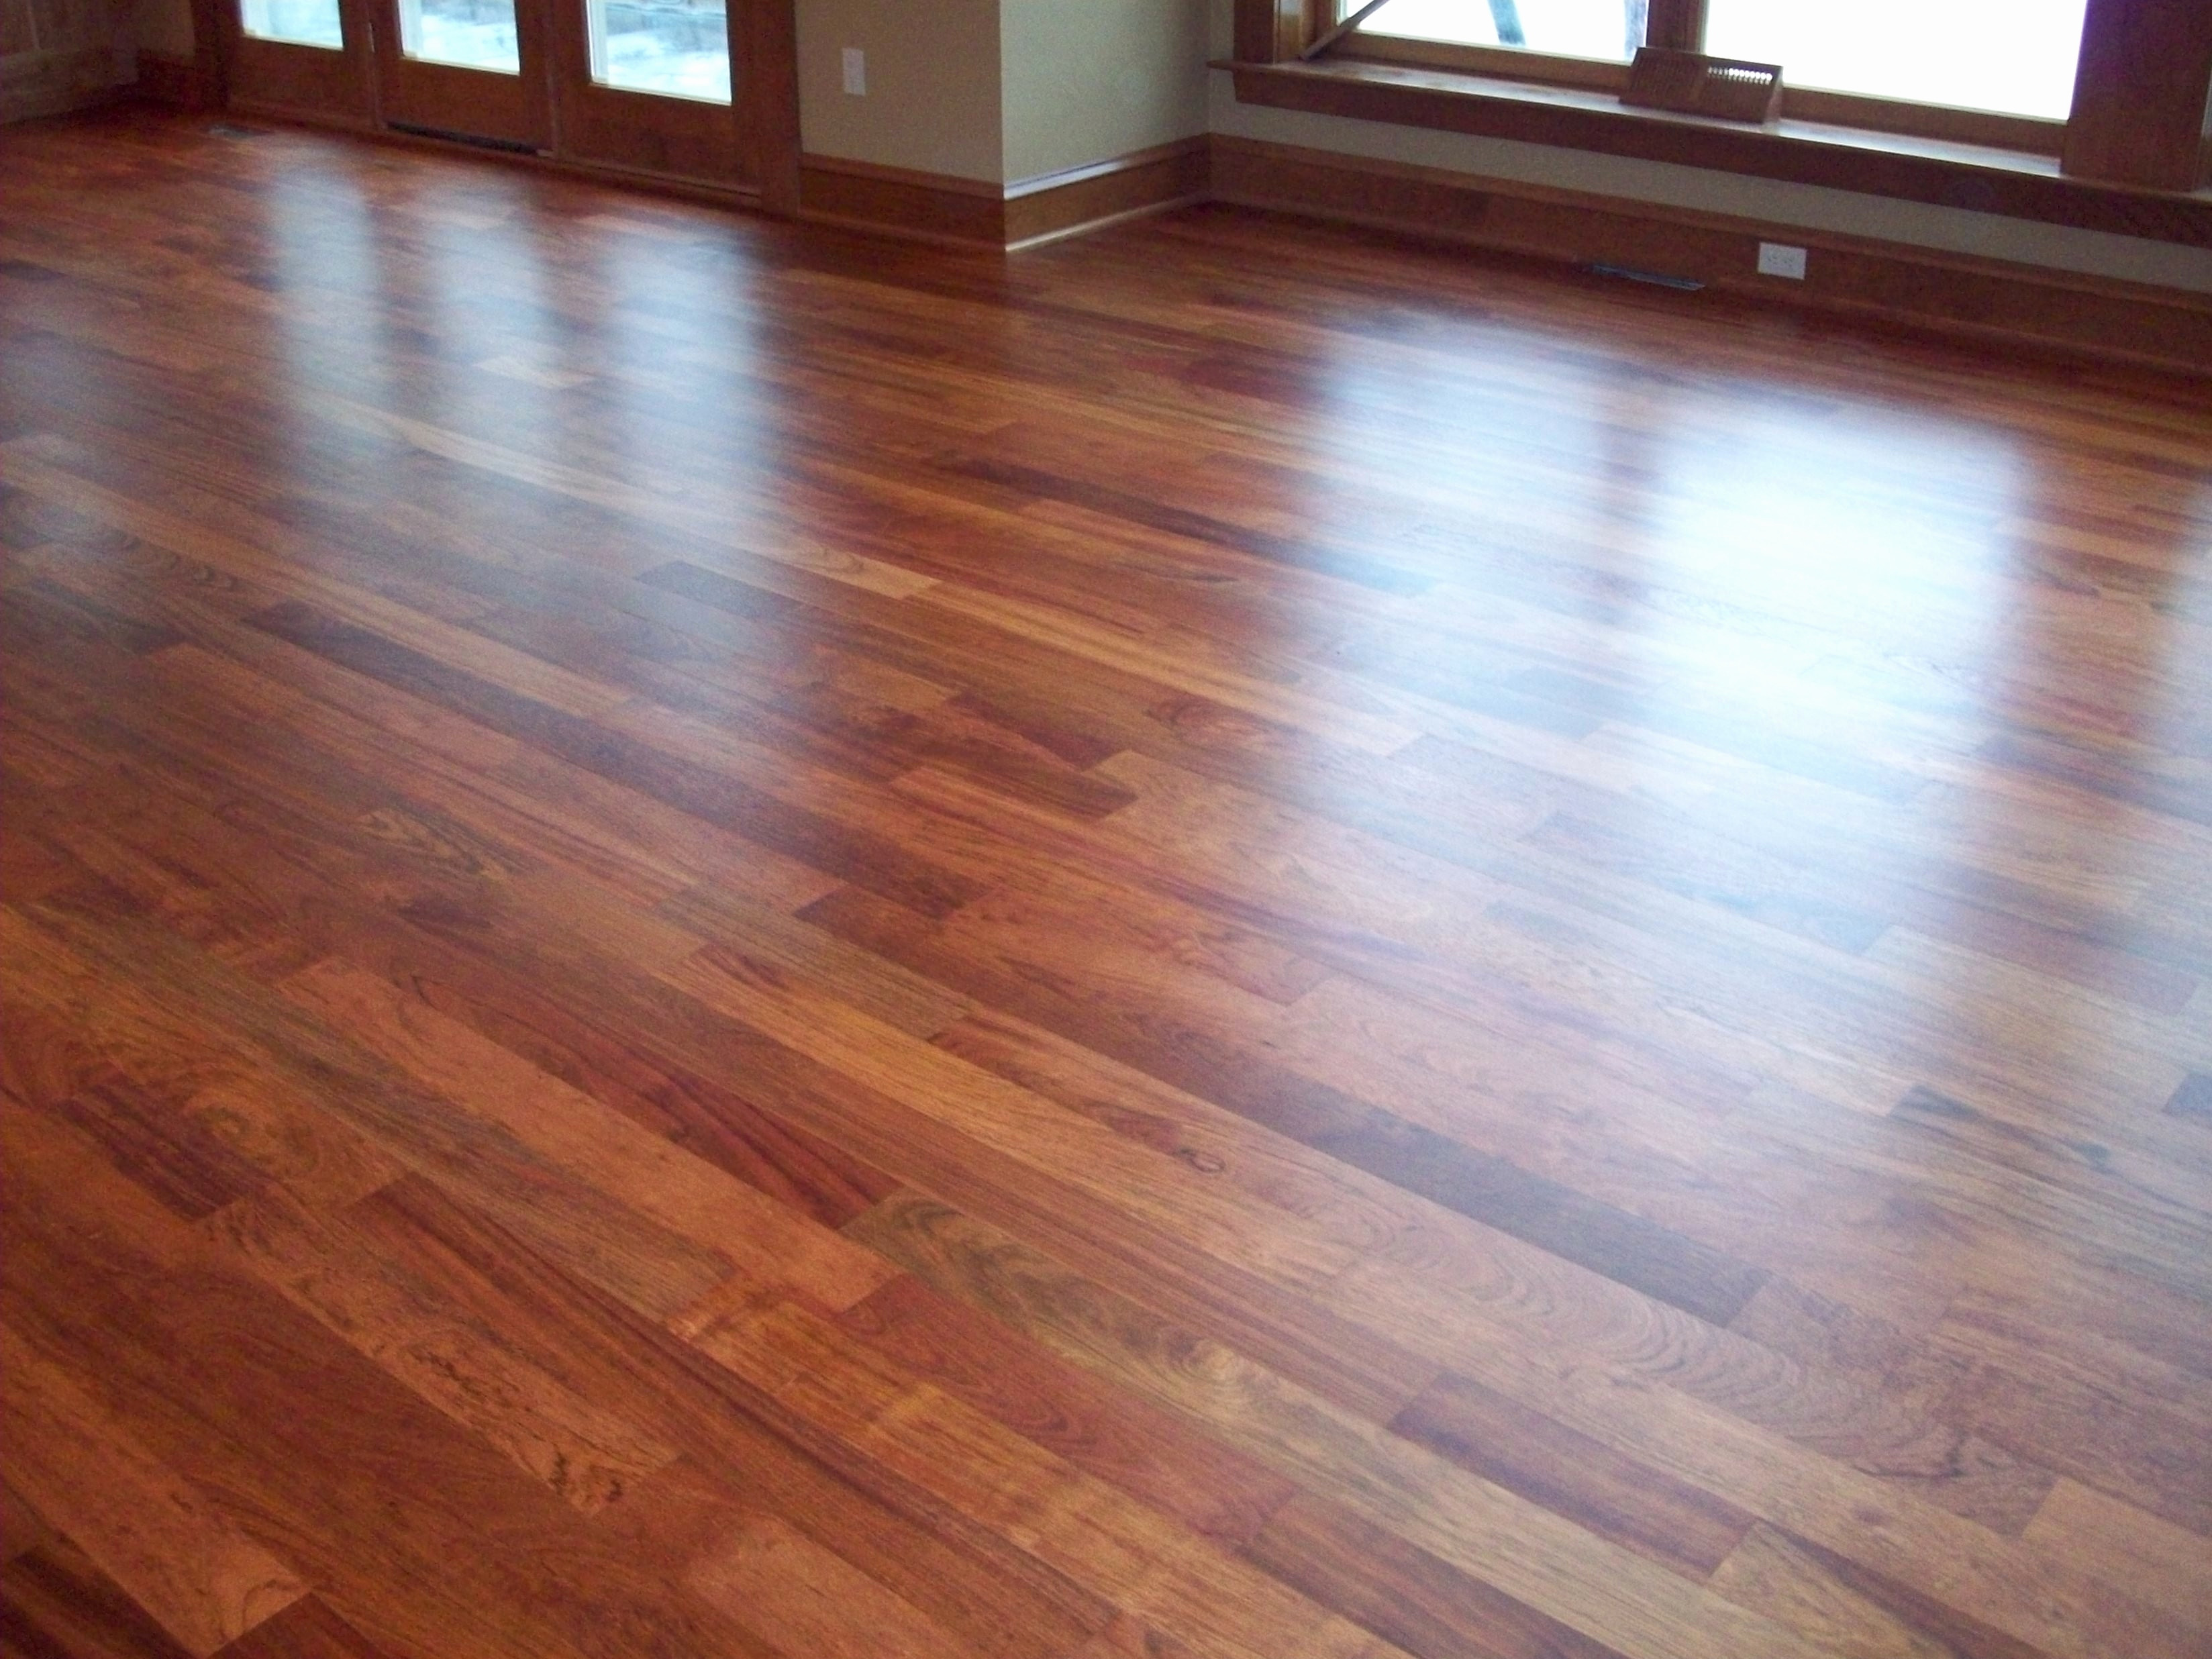 laminate hardwood floor cleaner of best hardwood floor steamers inspirational best steam cleaner for regarding best hardwood floor steamers inspirational best steam cleaner for laminate wood floors